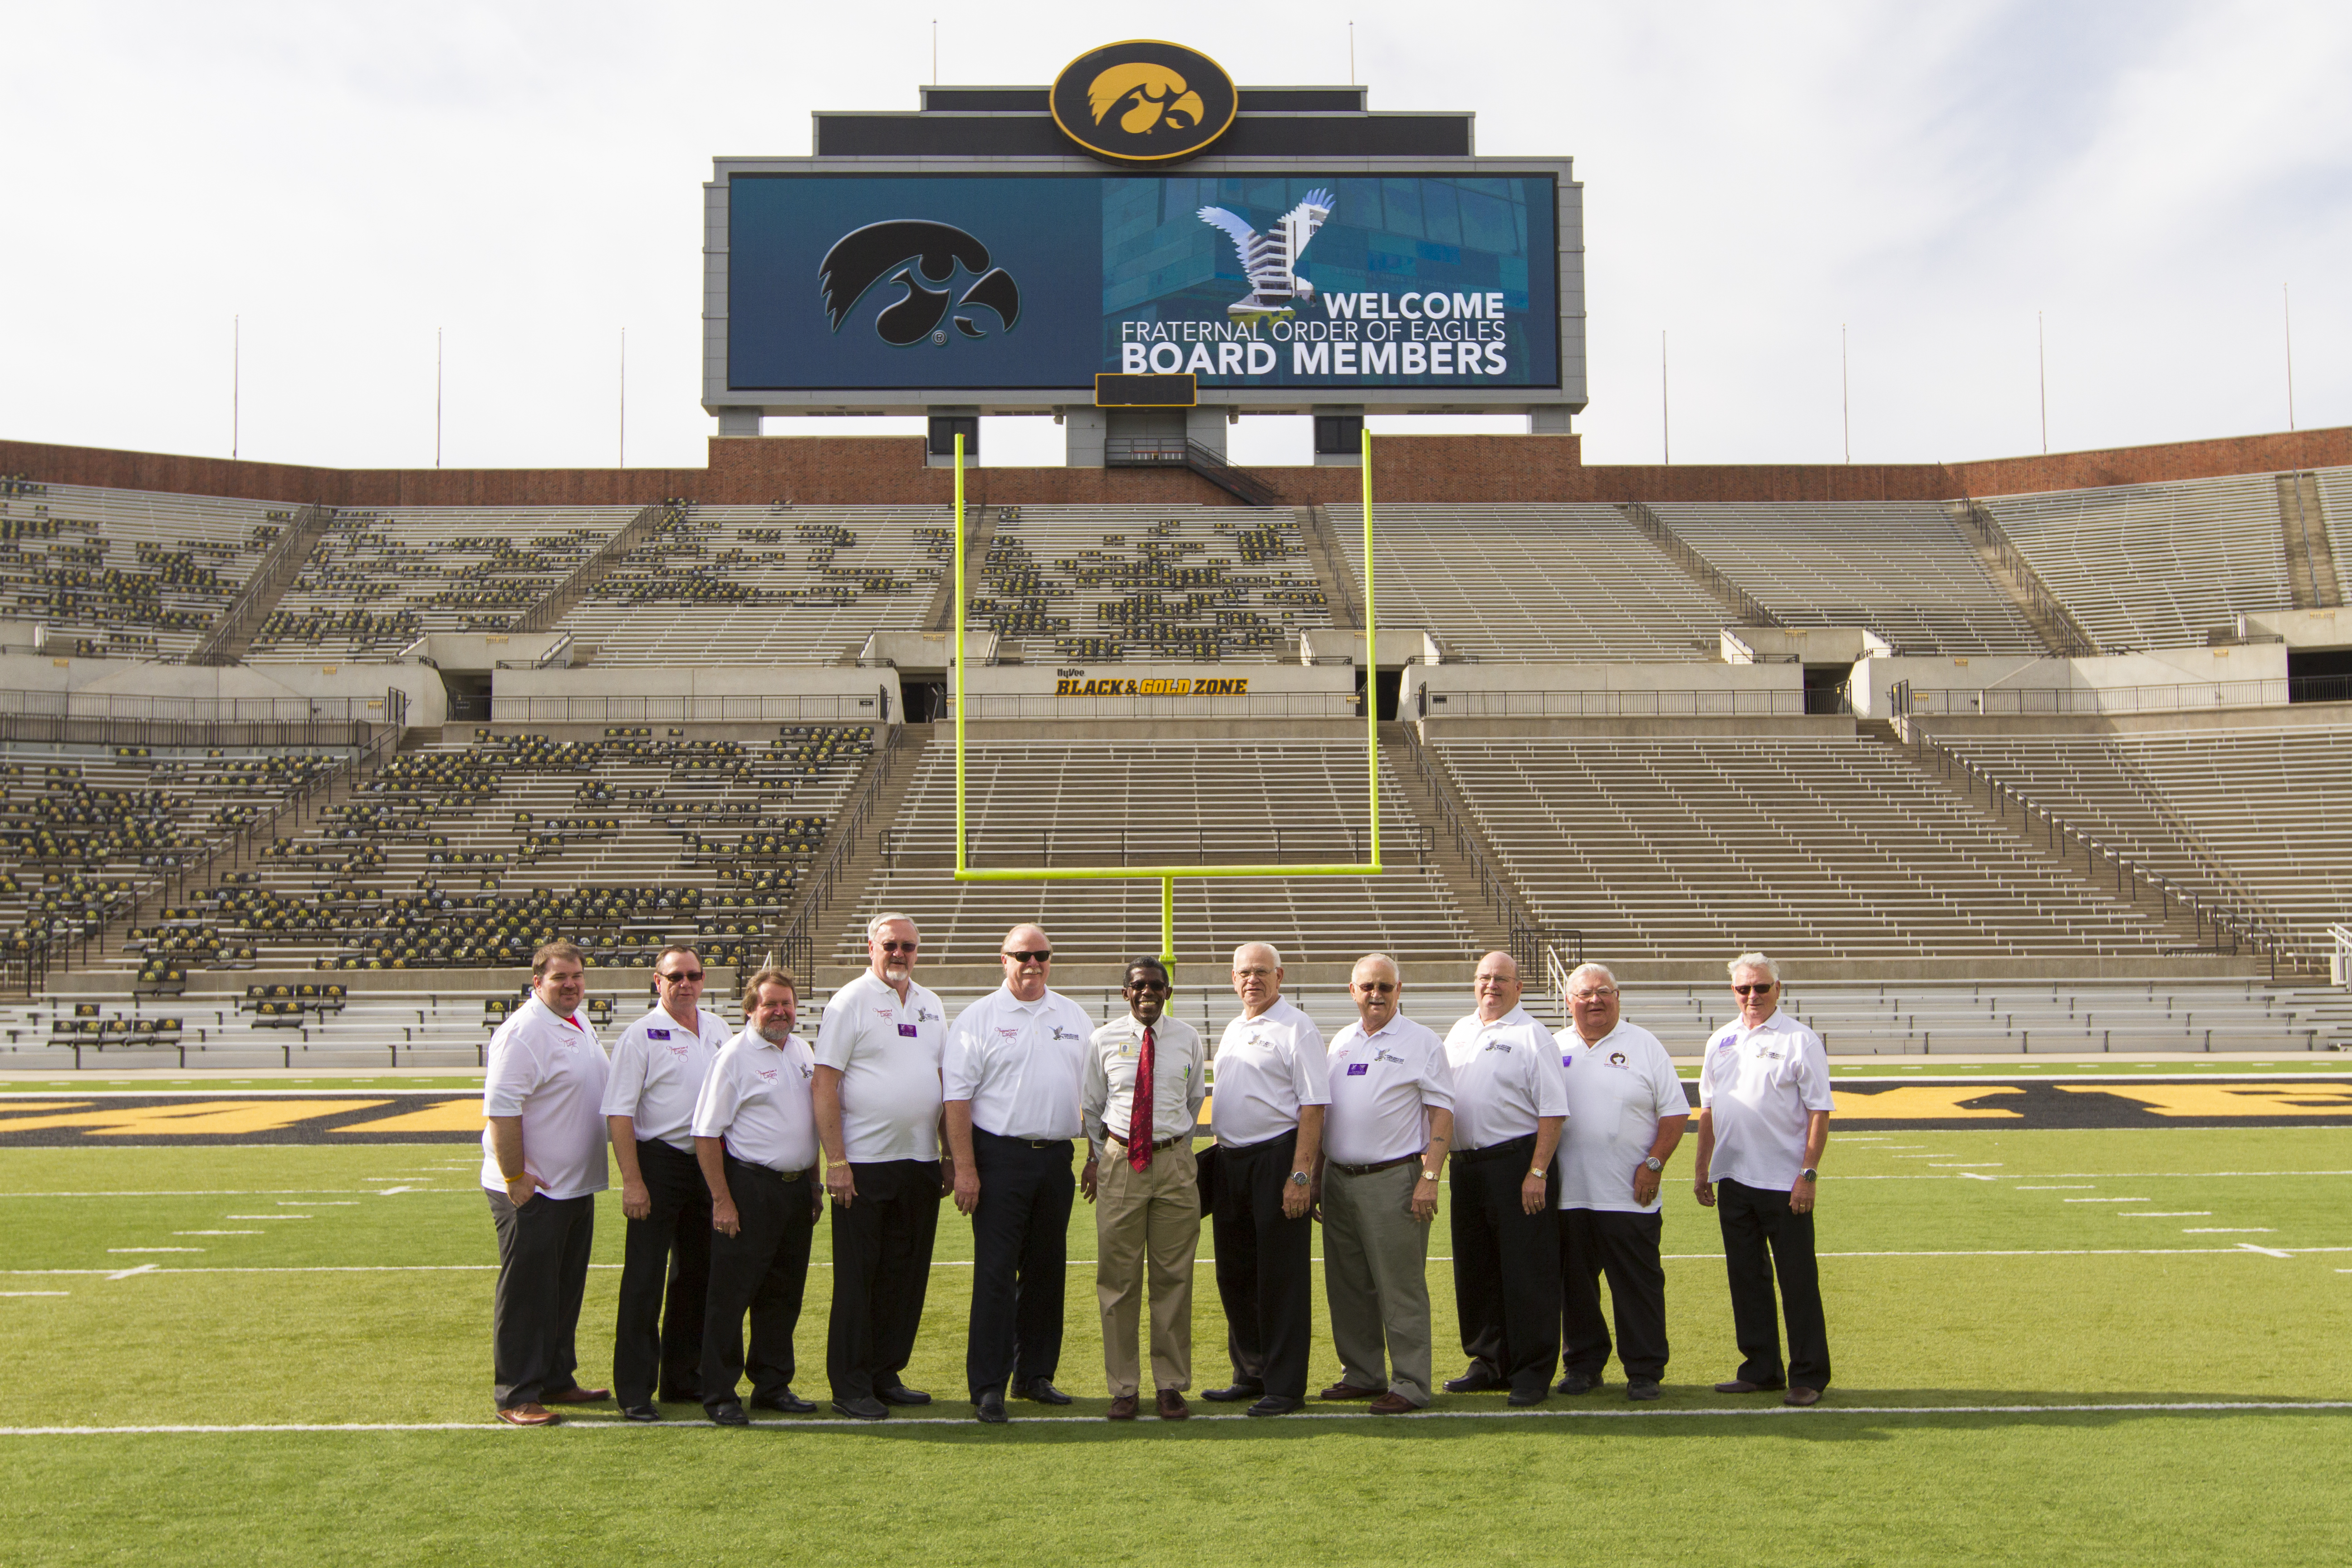 Iowa Leadership welcome the Fraternal Order of Eagles Board of Trustees